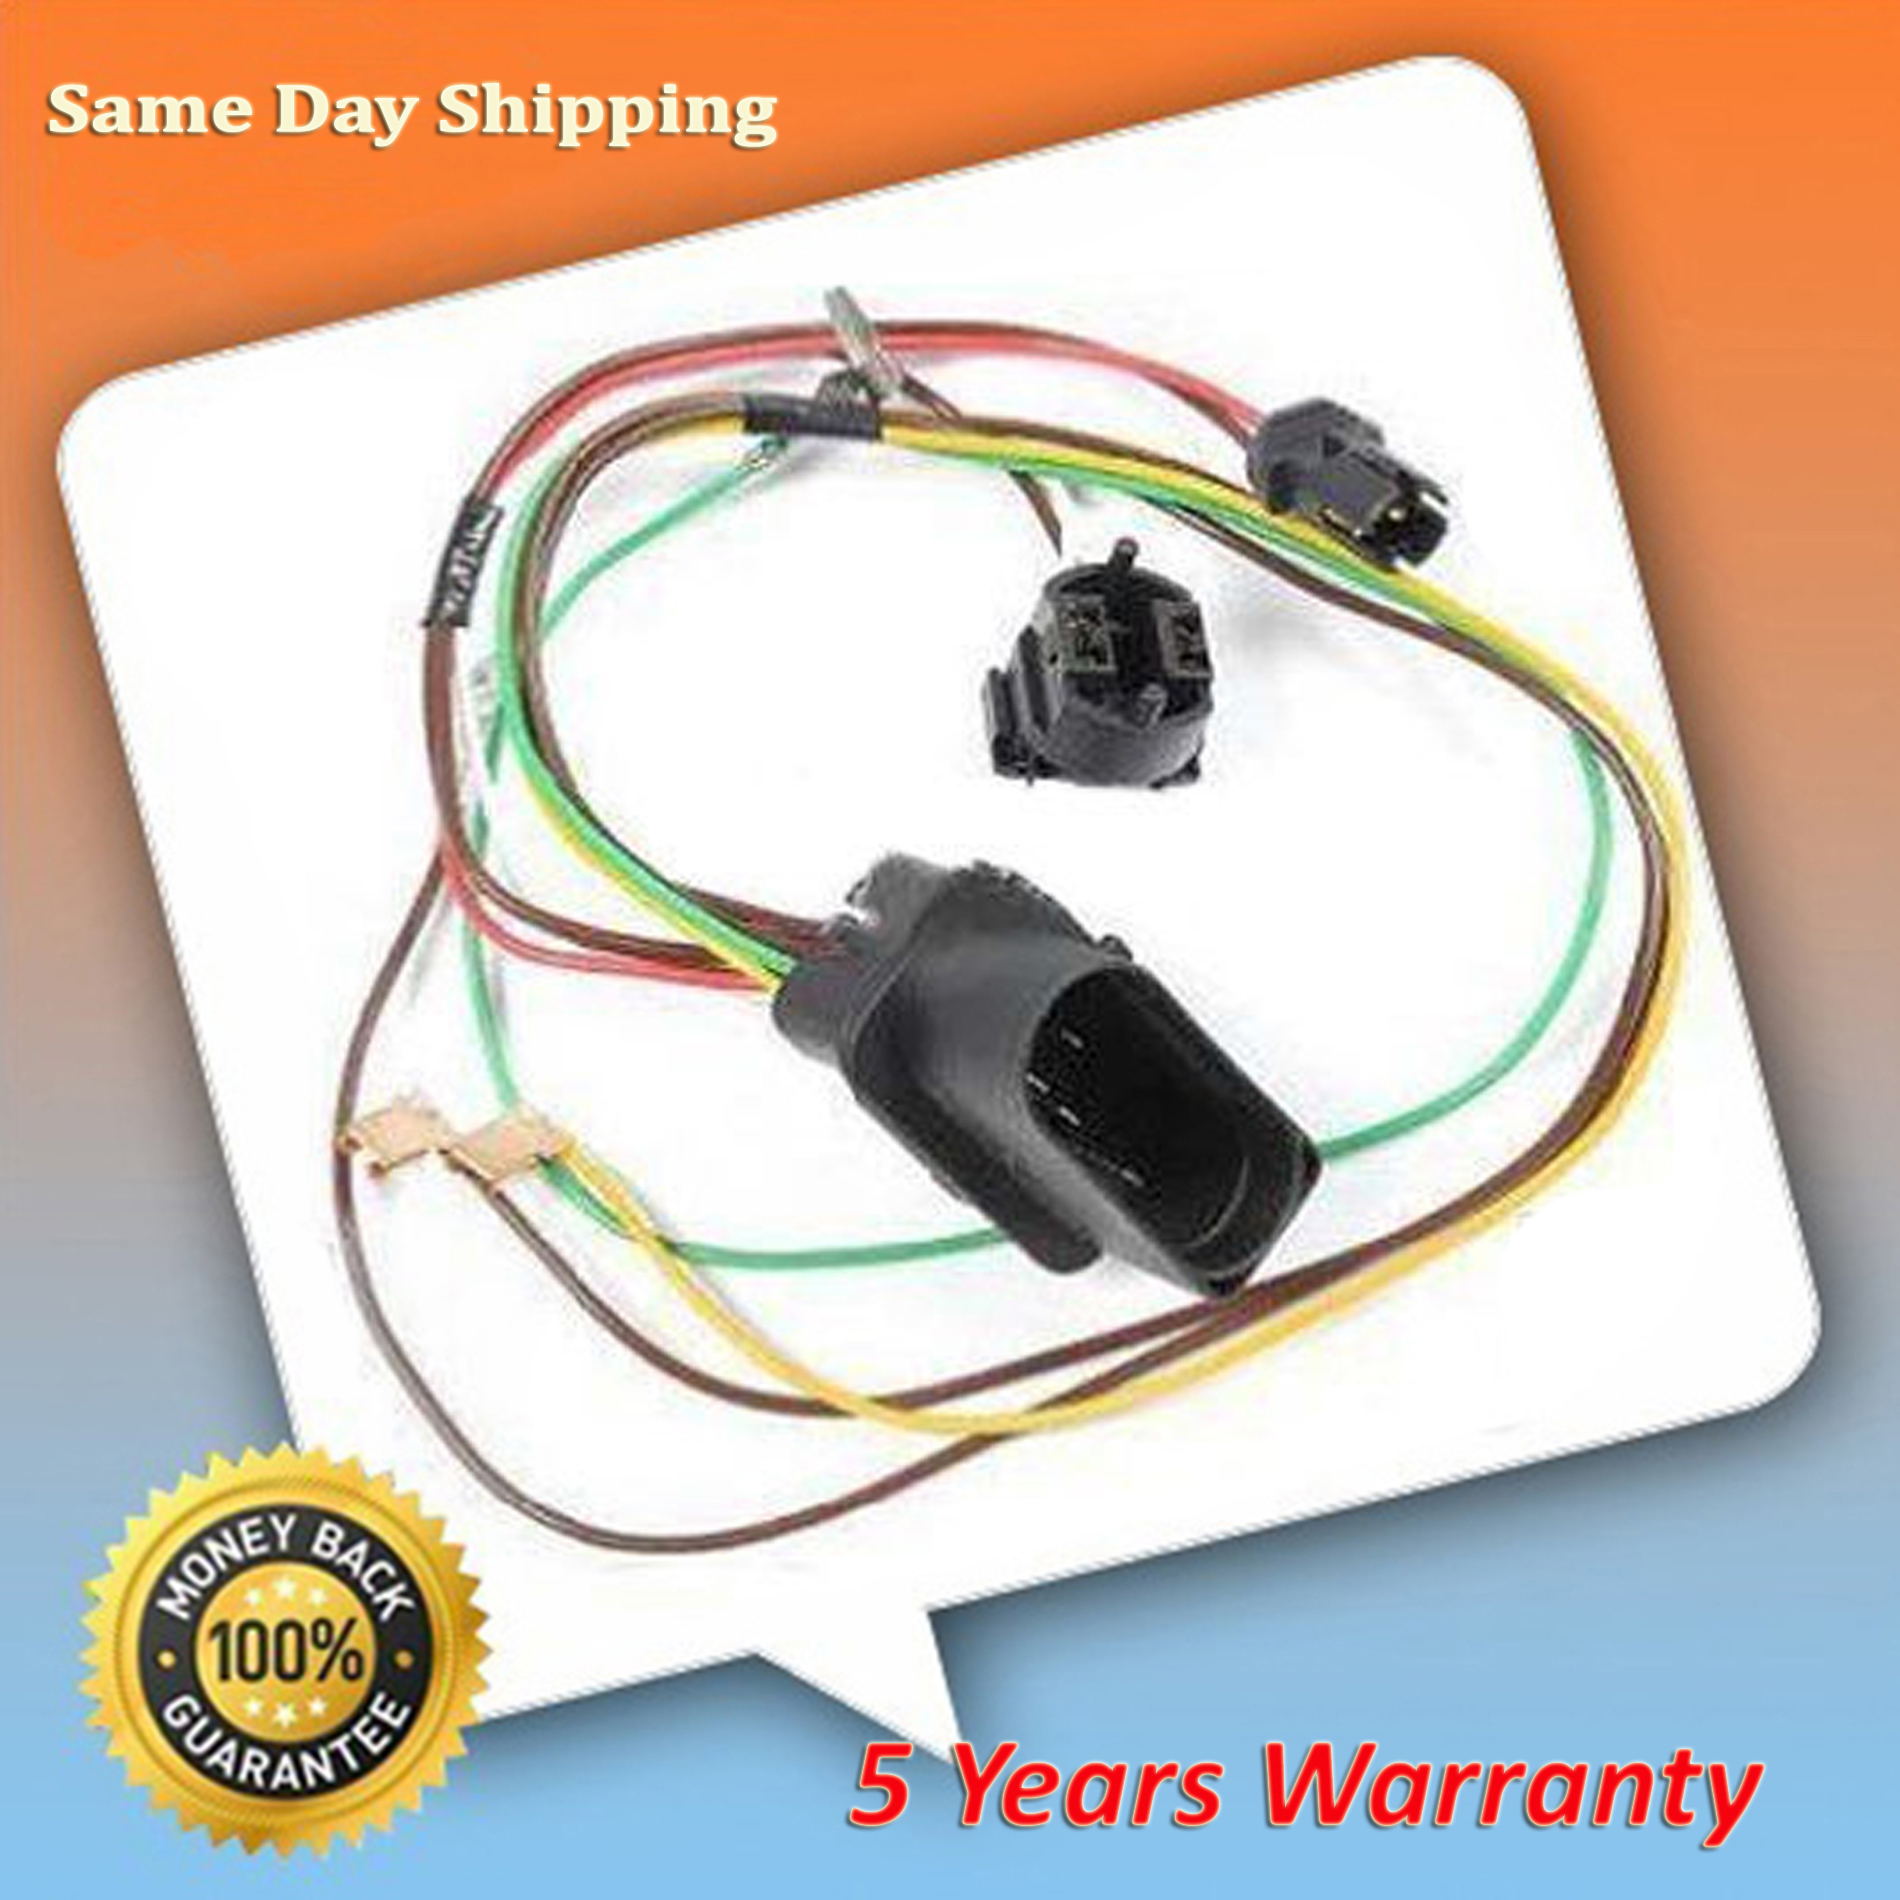 hight resolution of for brand new vw passat 3b0971671 headlight wire harness connector repair kit